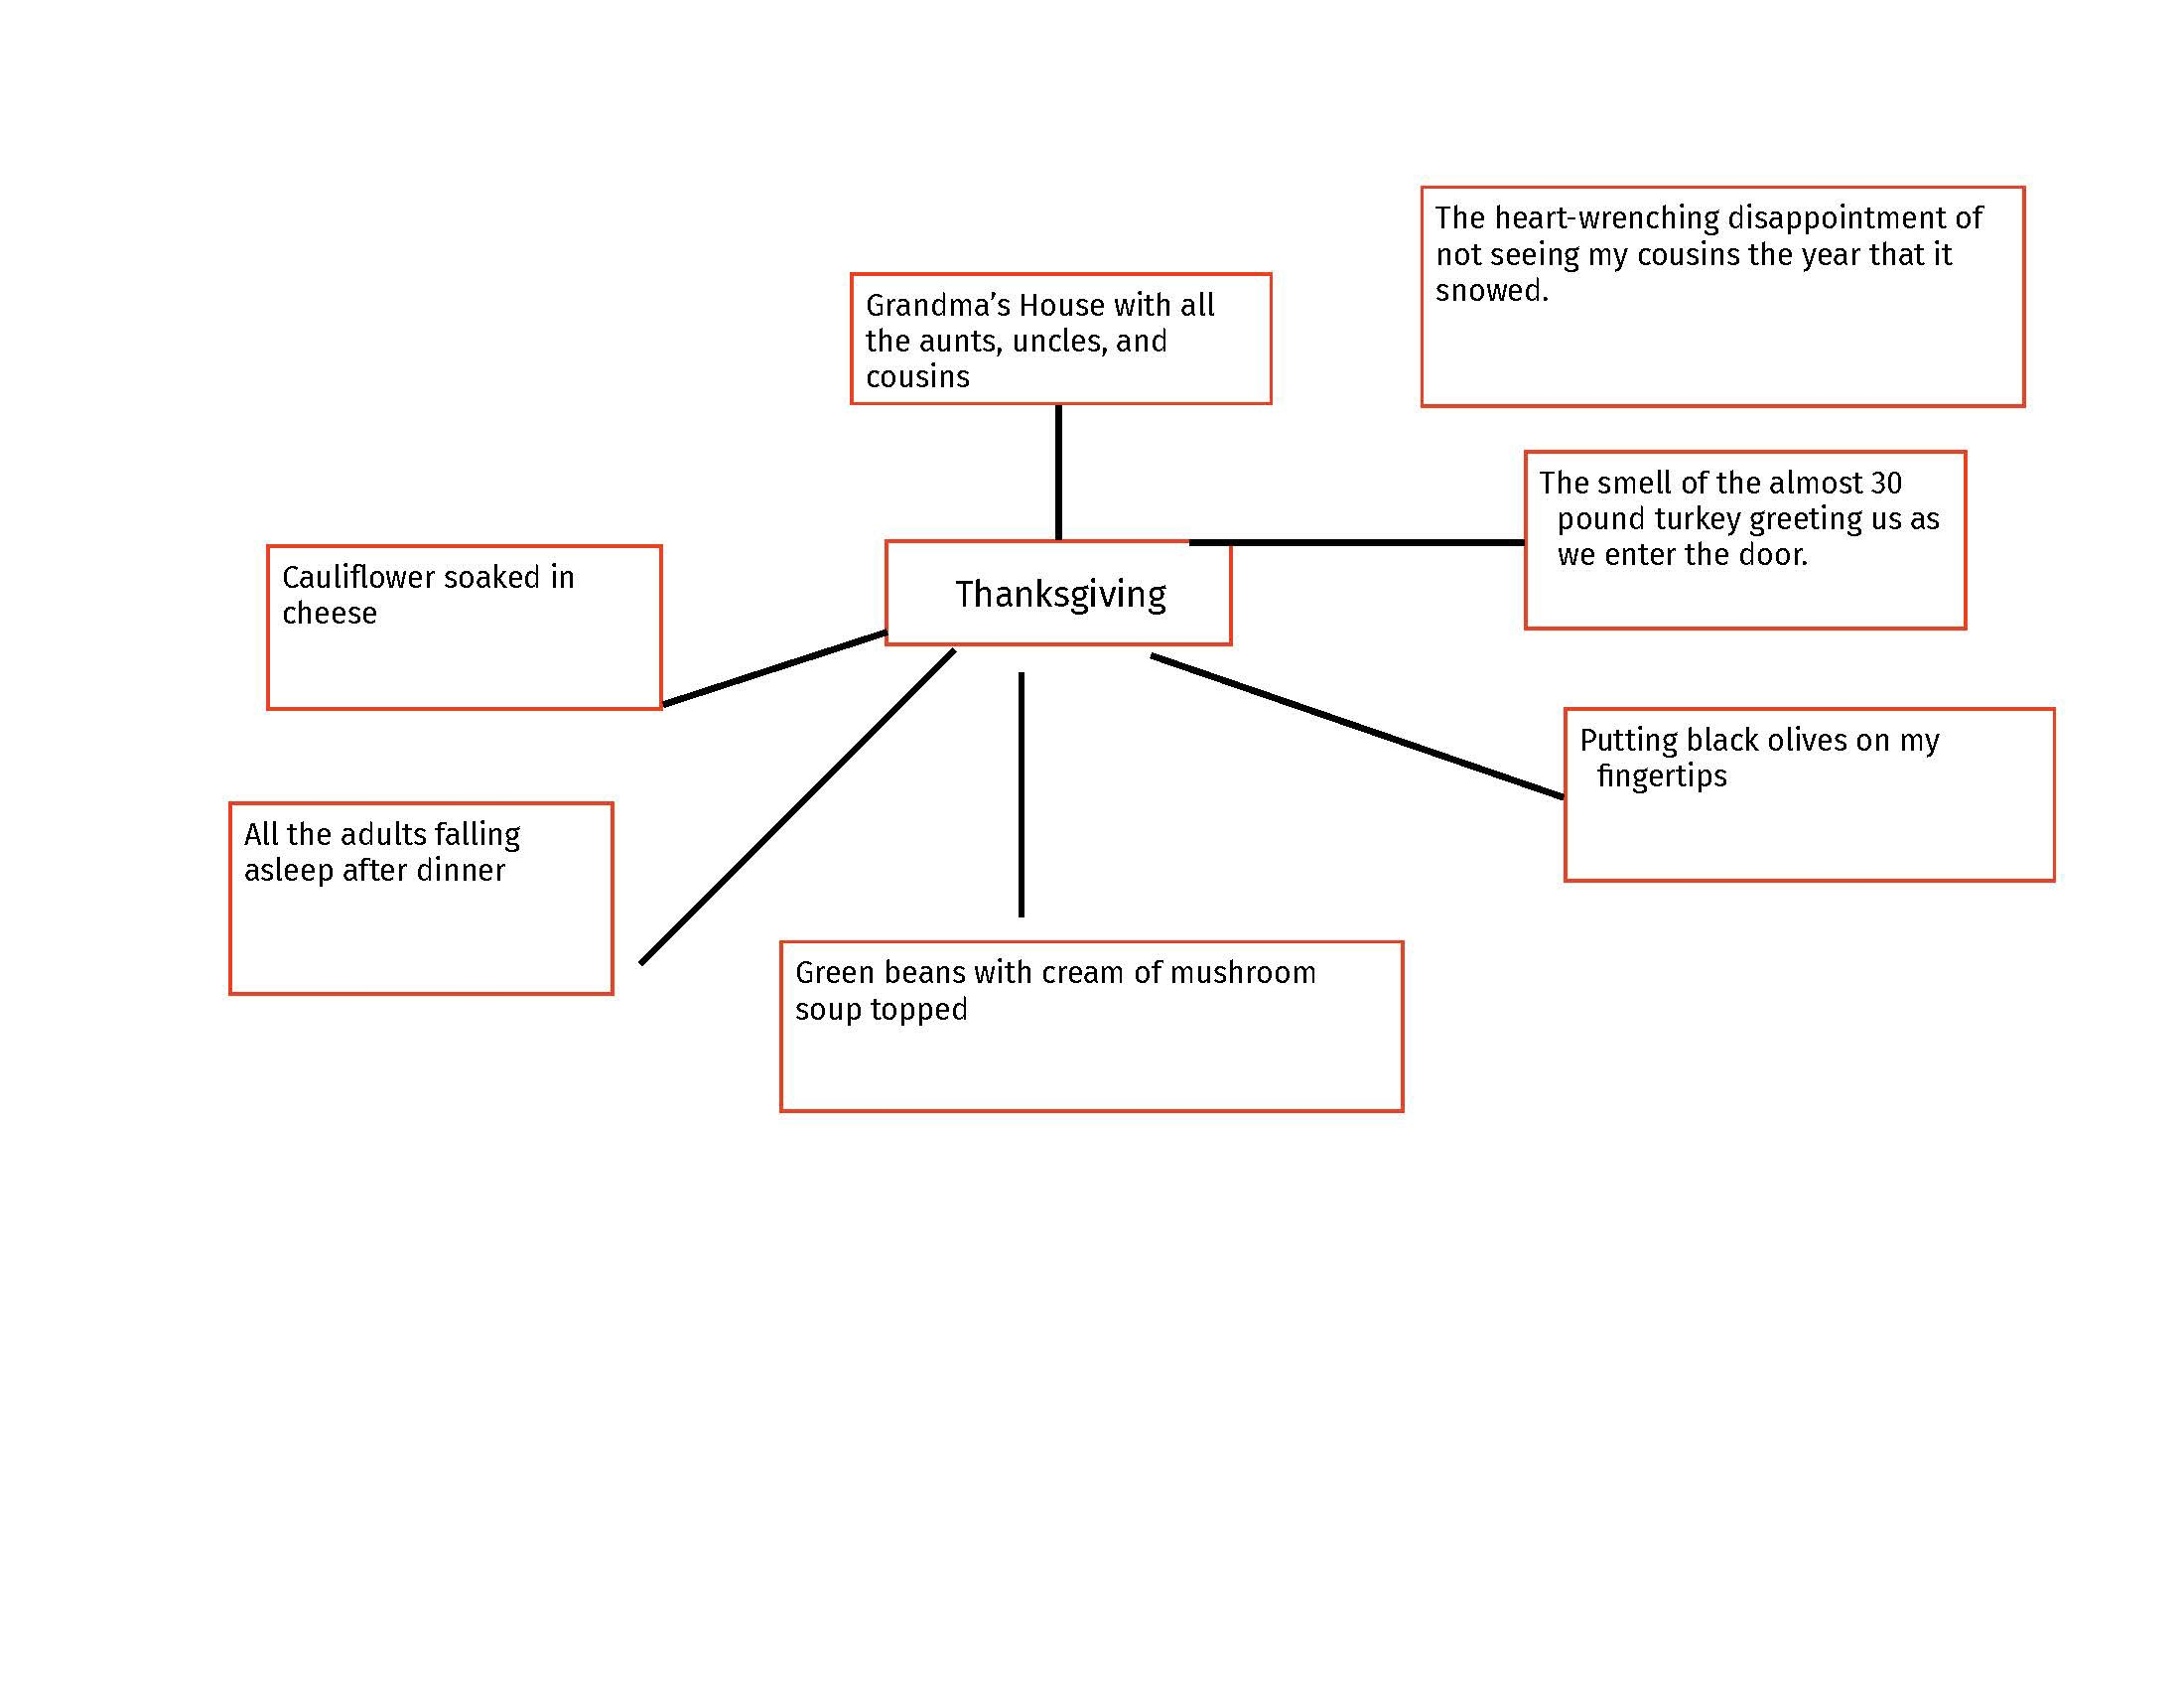 Mind map showing topics that I might include in a legacy story about dinner at Grandma's house.